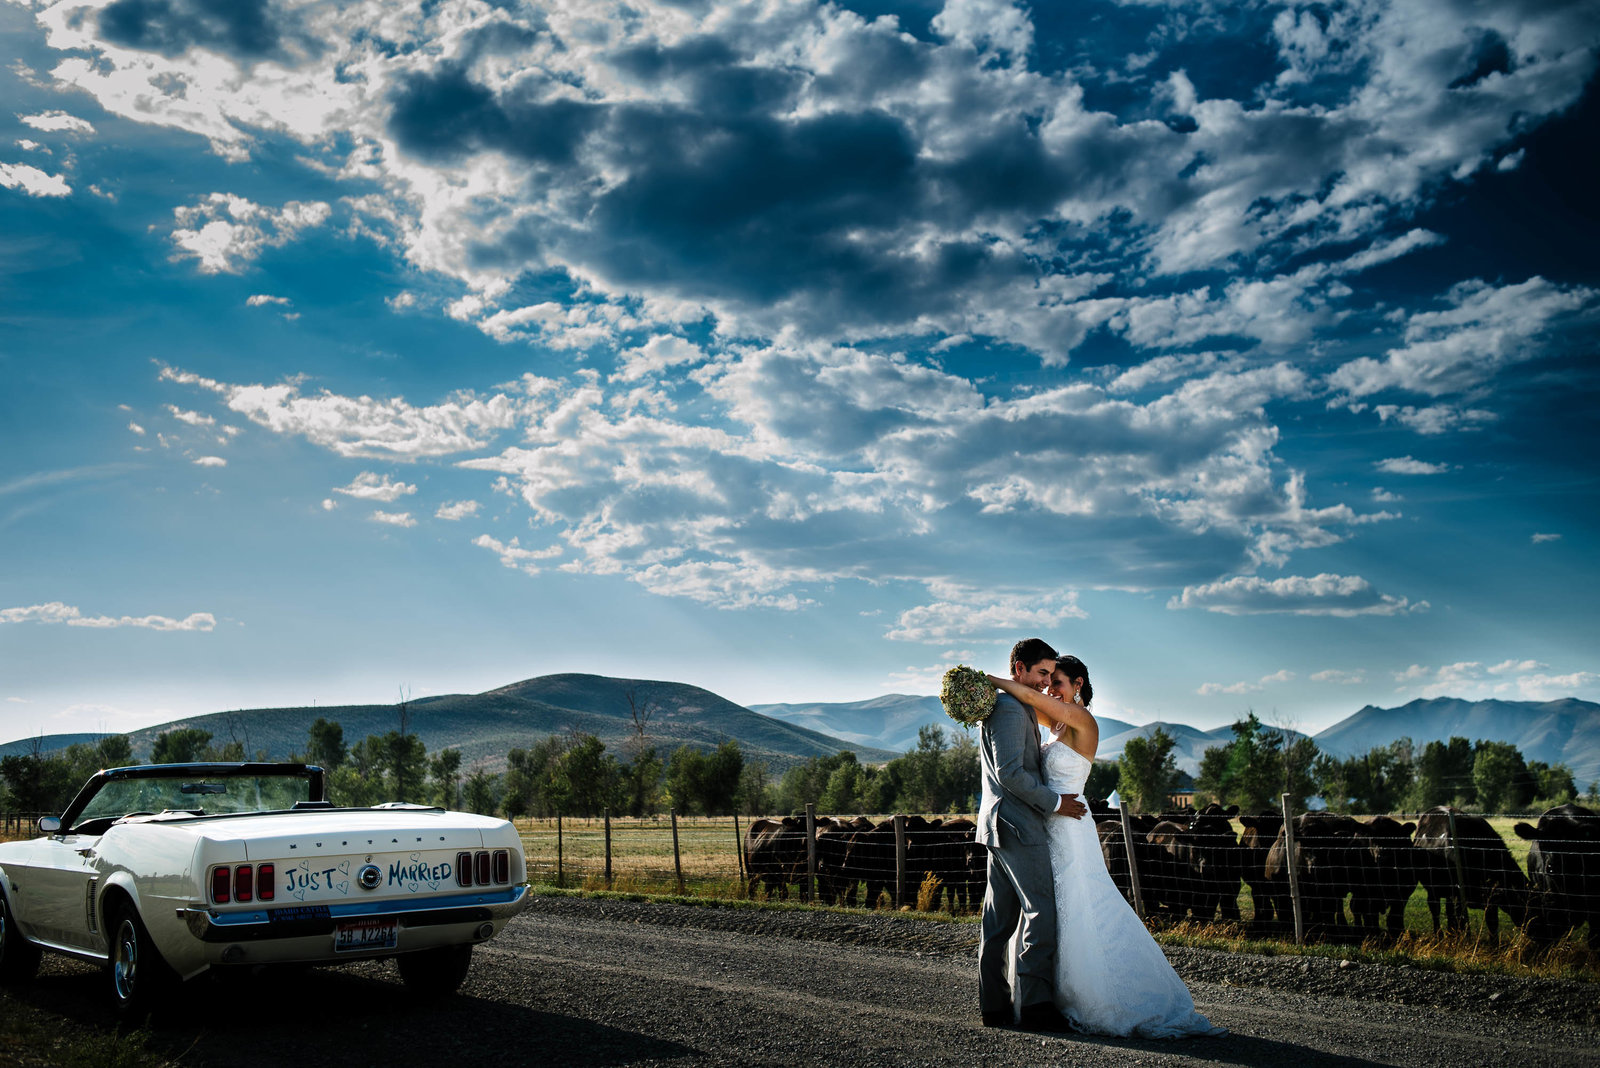 272-El-paso-wedding-photographer-KaCh_0479